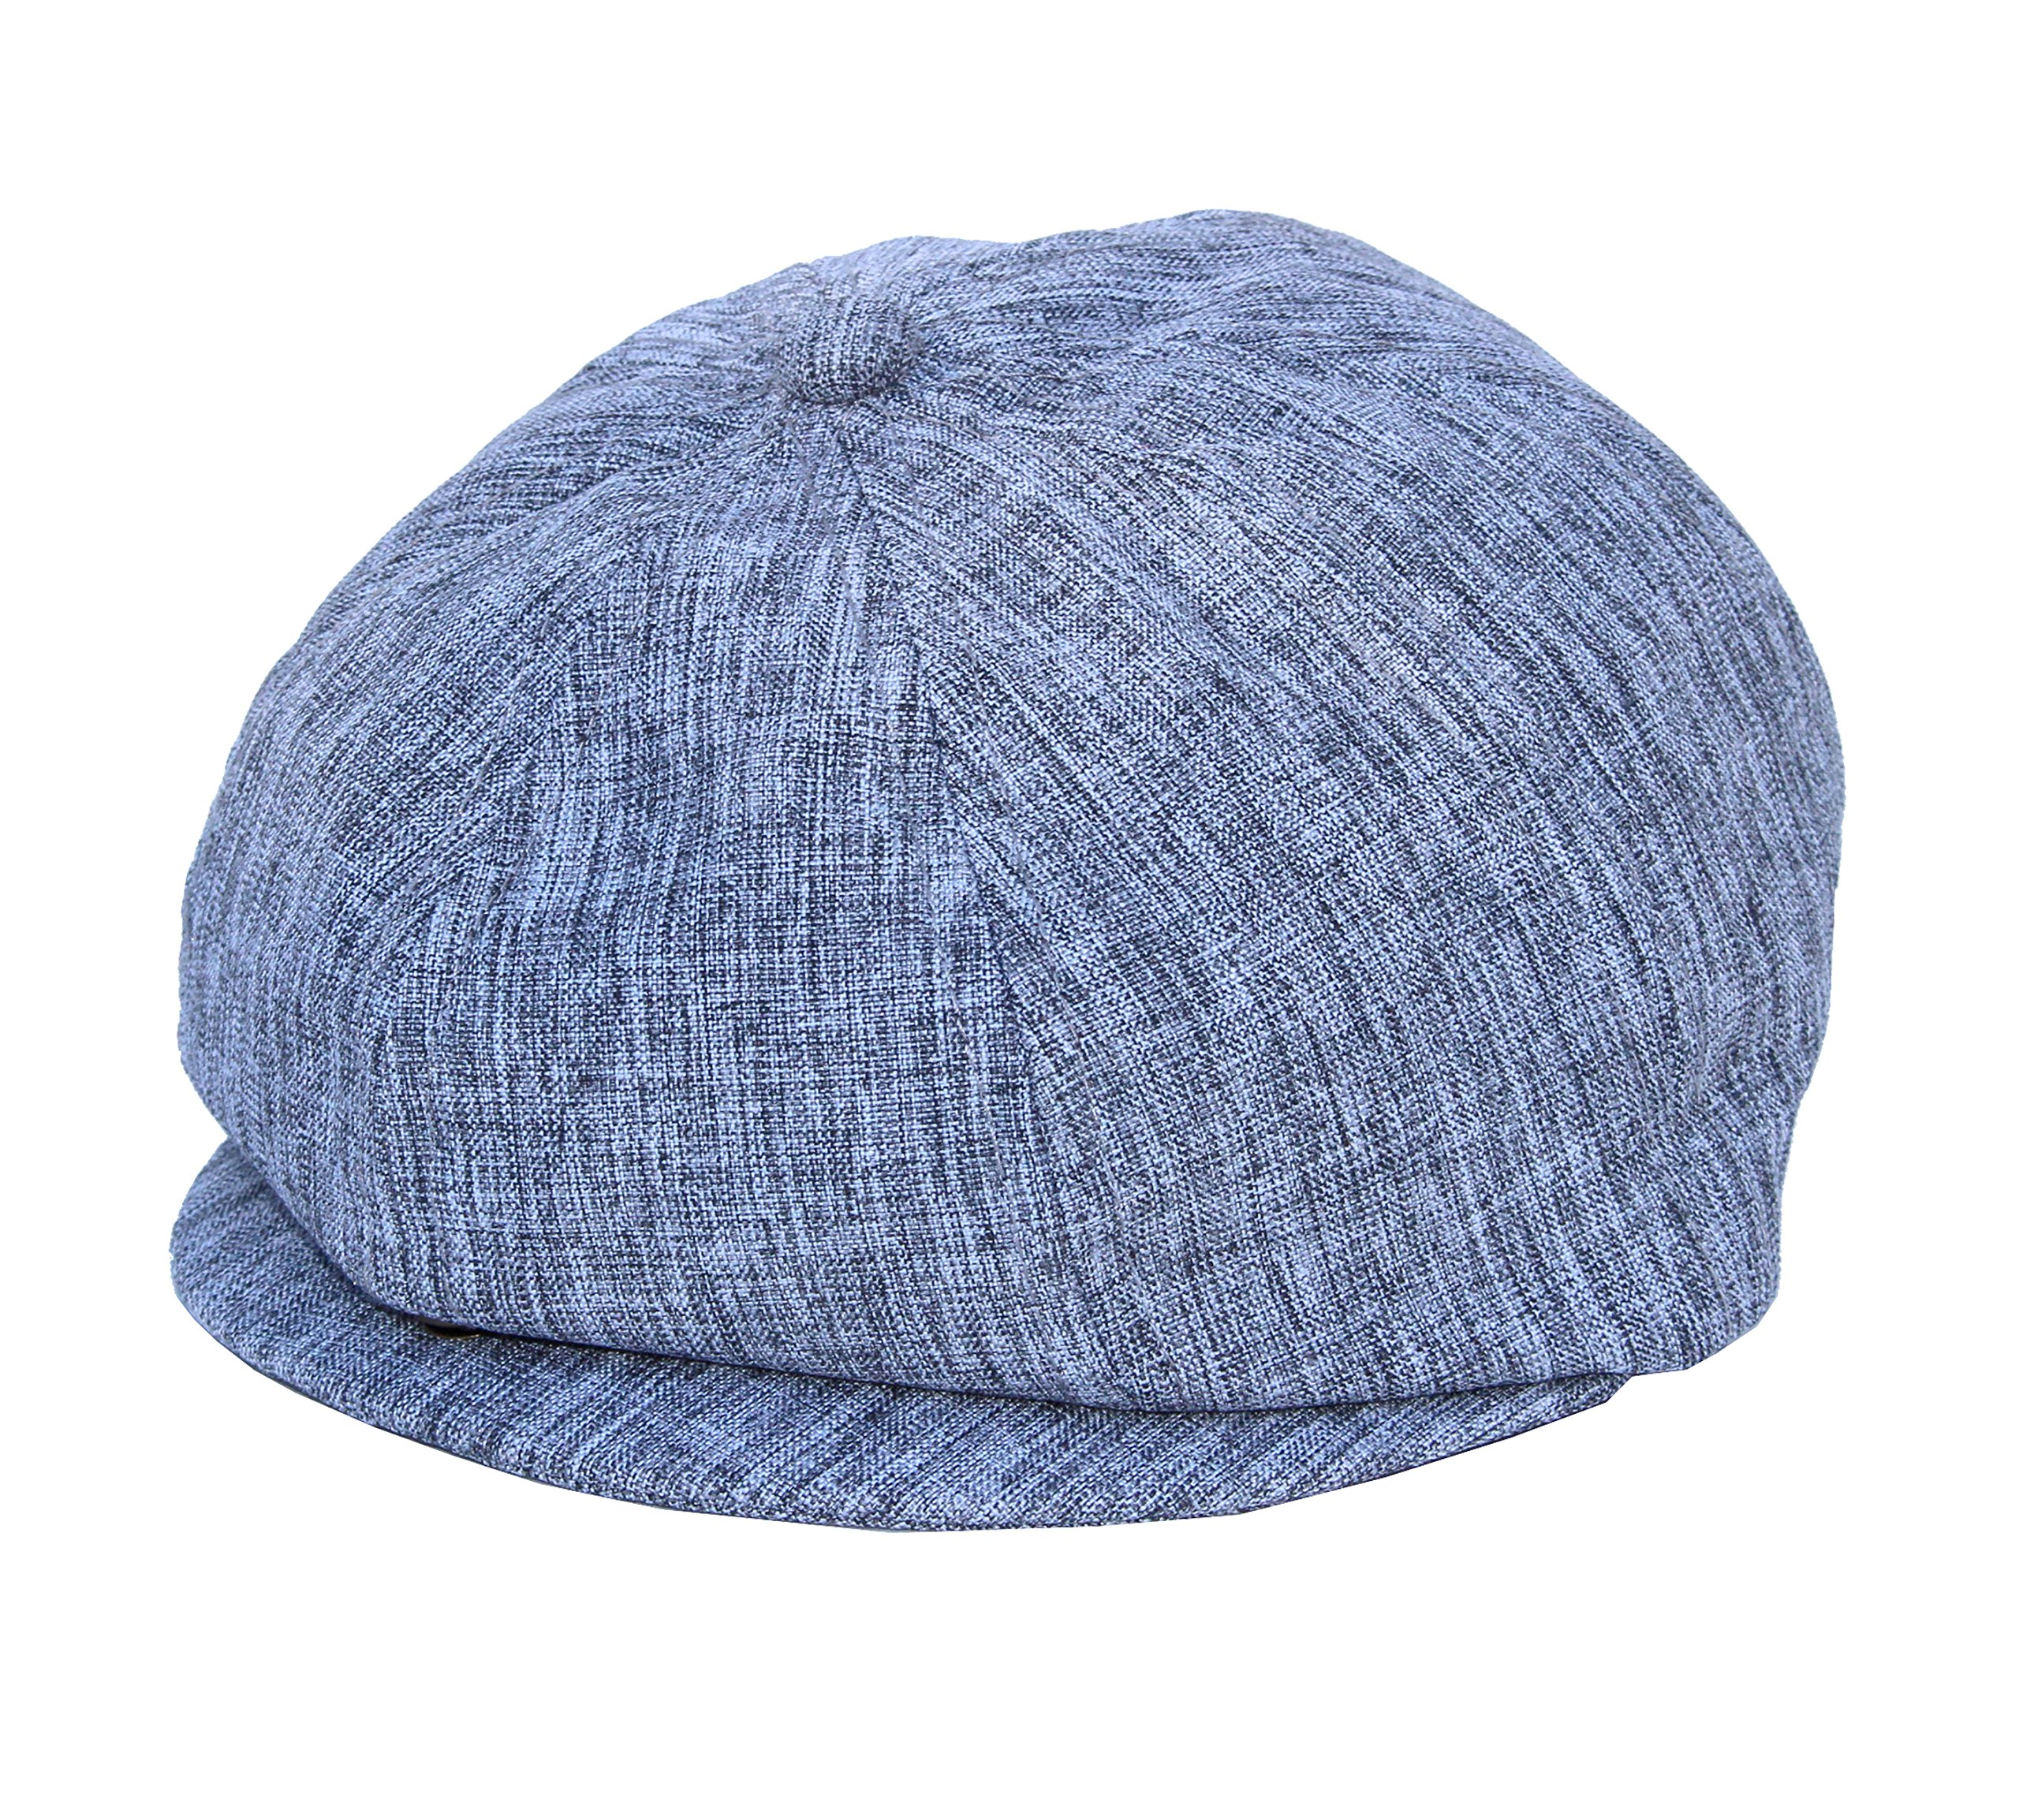 Galleon - Born To Love - Baby Boy s Ring Bearer Pageboy Gray Newsboy Cap (L  54cm) 5d51a244c1ff